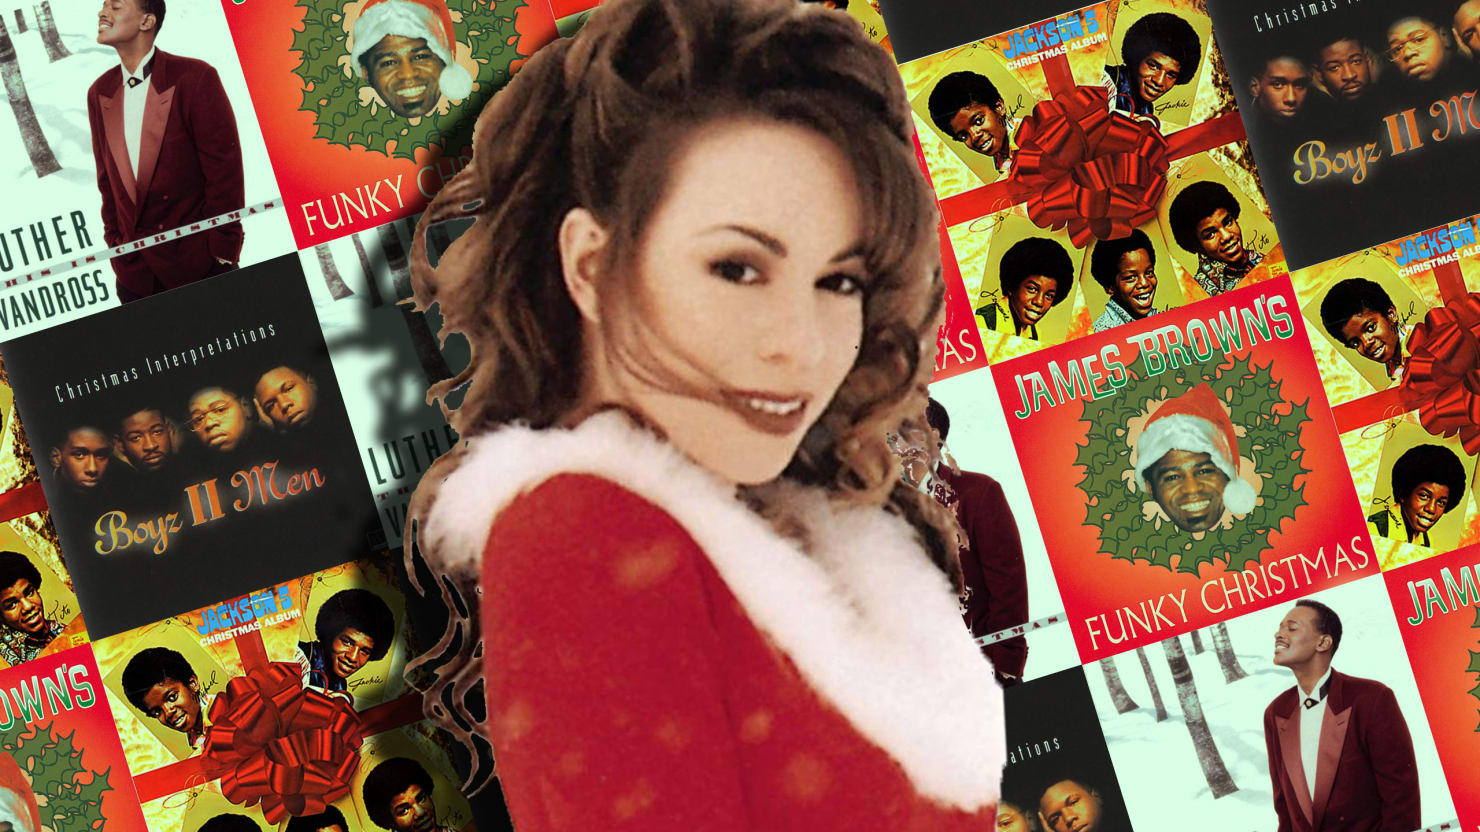 10 best christmas soul and rb albums mariah carey boyz ii men jackson 5 and more - Boys To Men Christmas